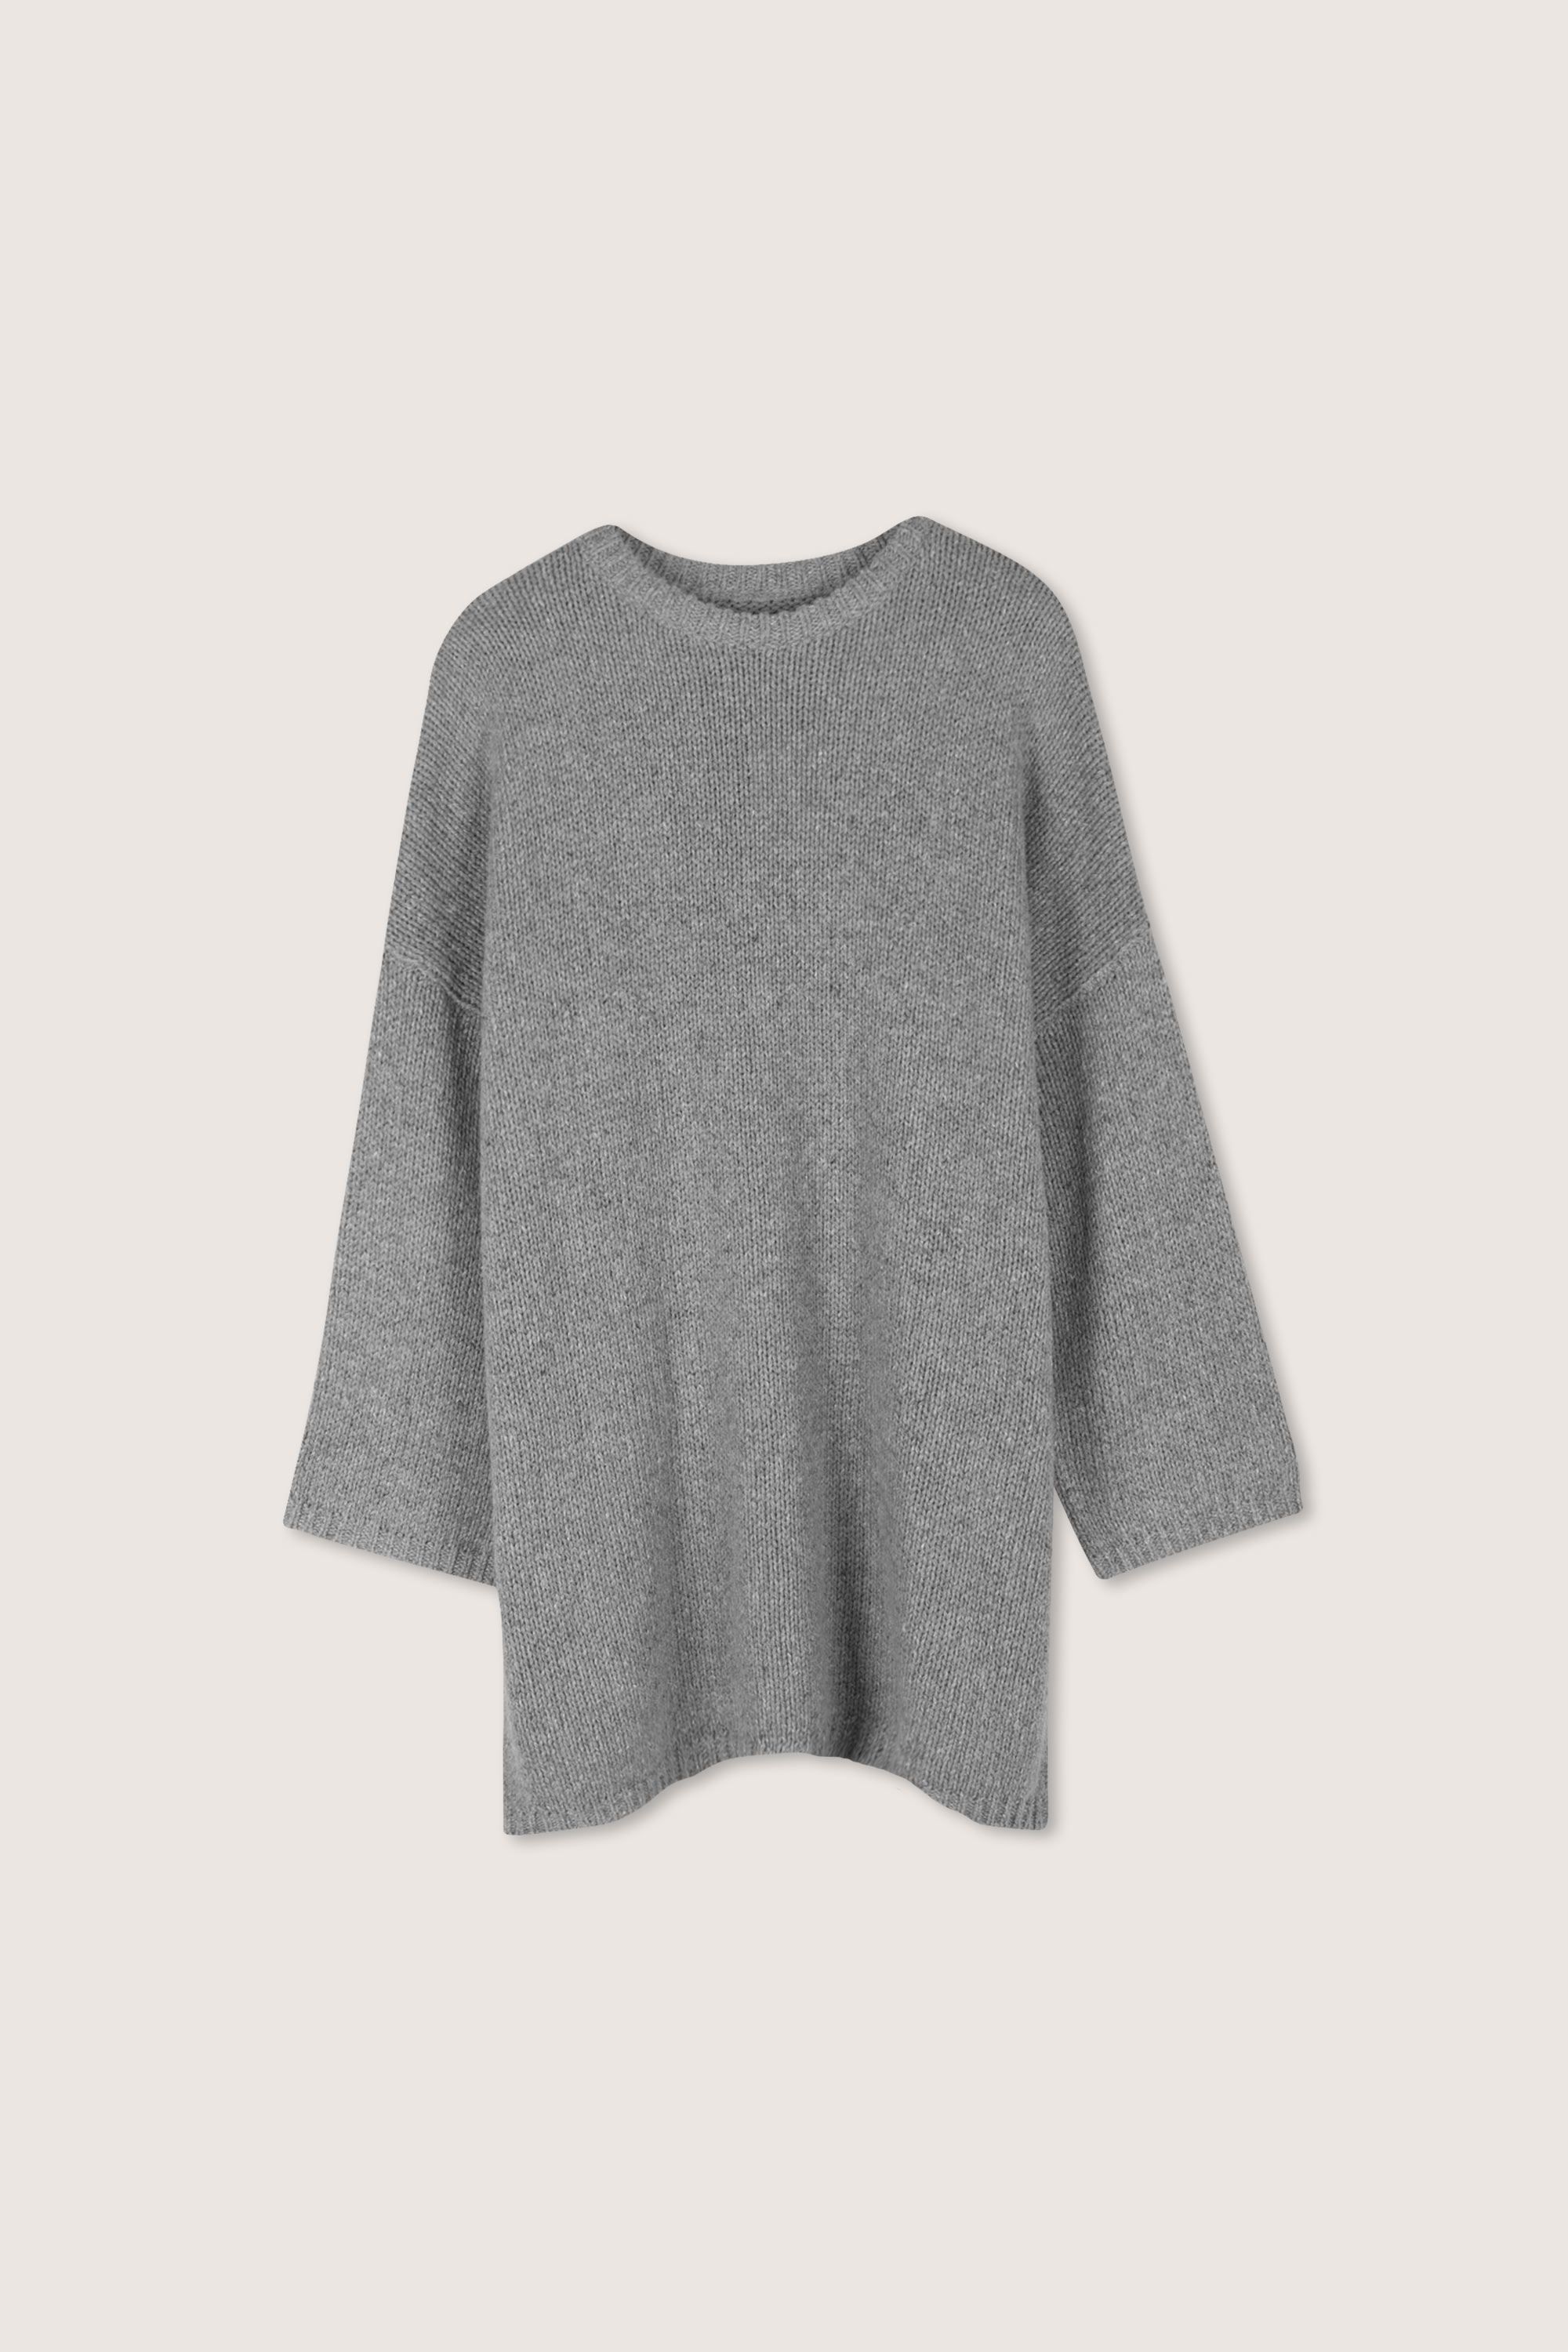 Sweater 2033 Gray 7